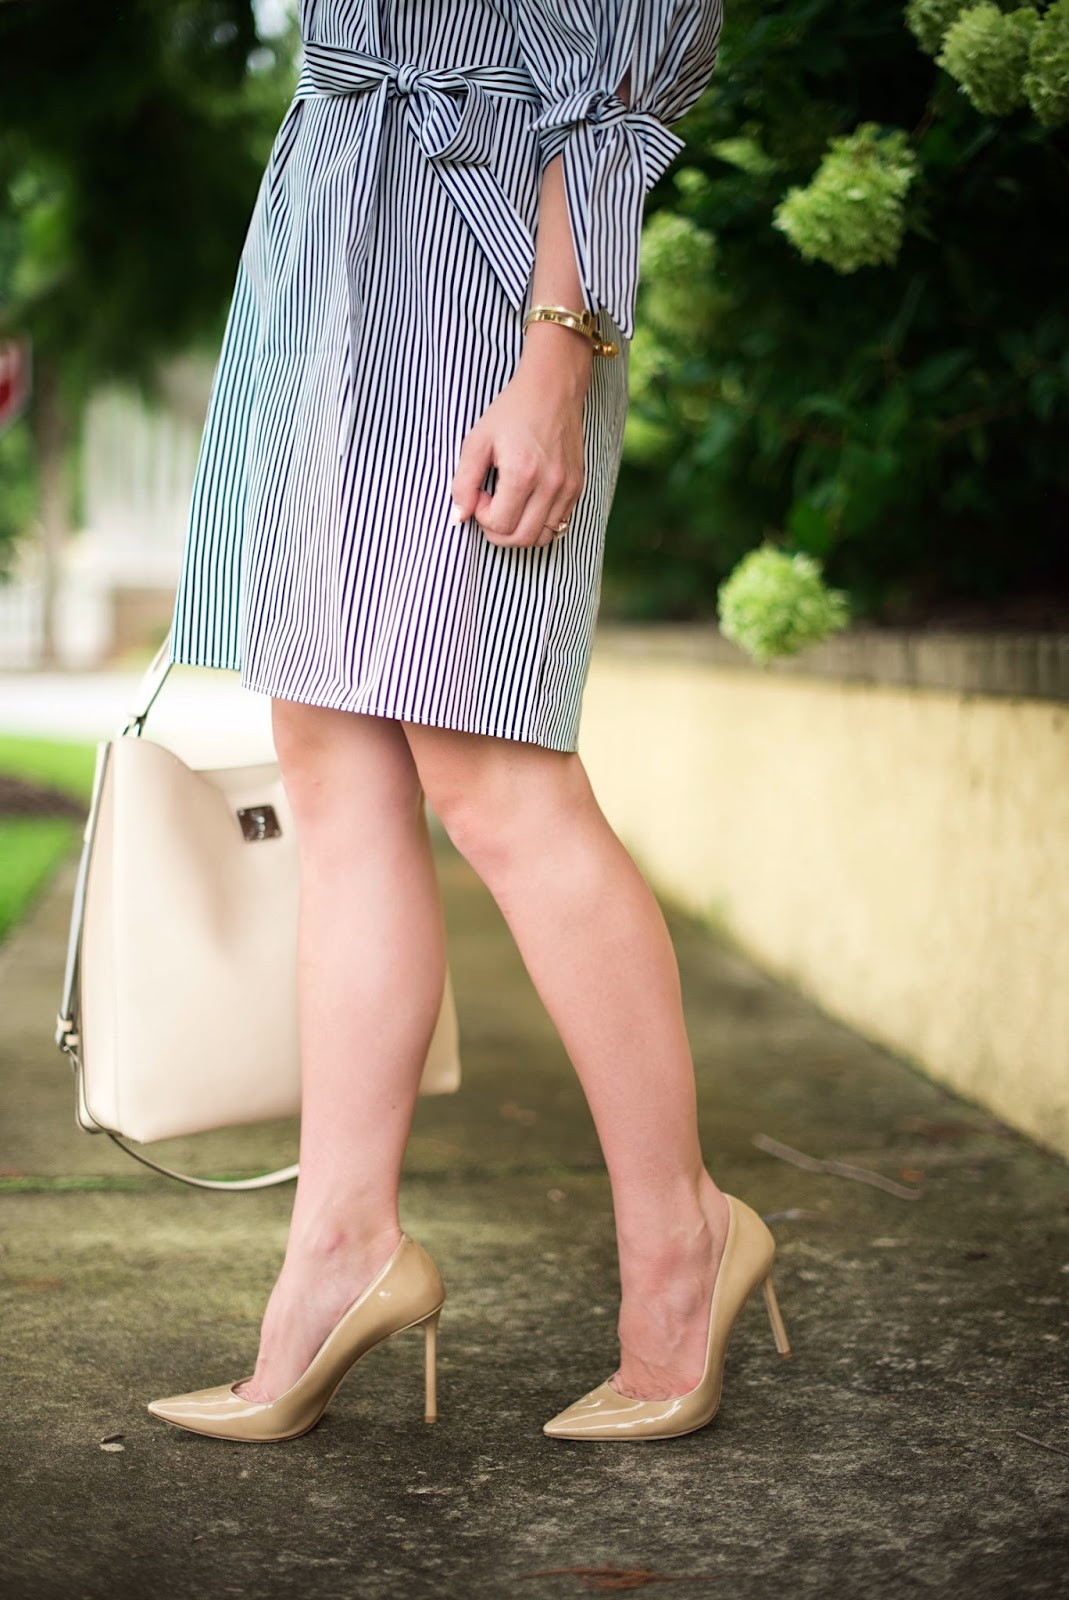 Jimmy Choo Romy Pumps - Click through to see more on Something Delightful Blog!